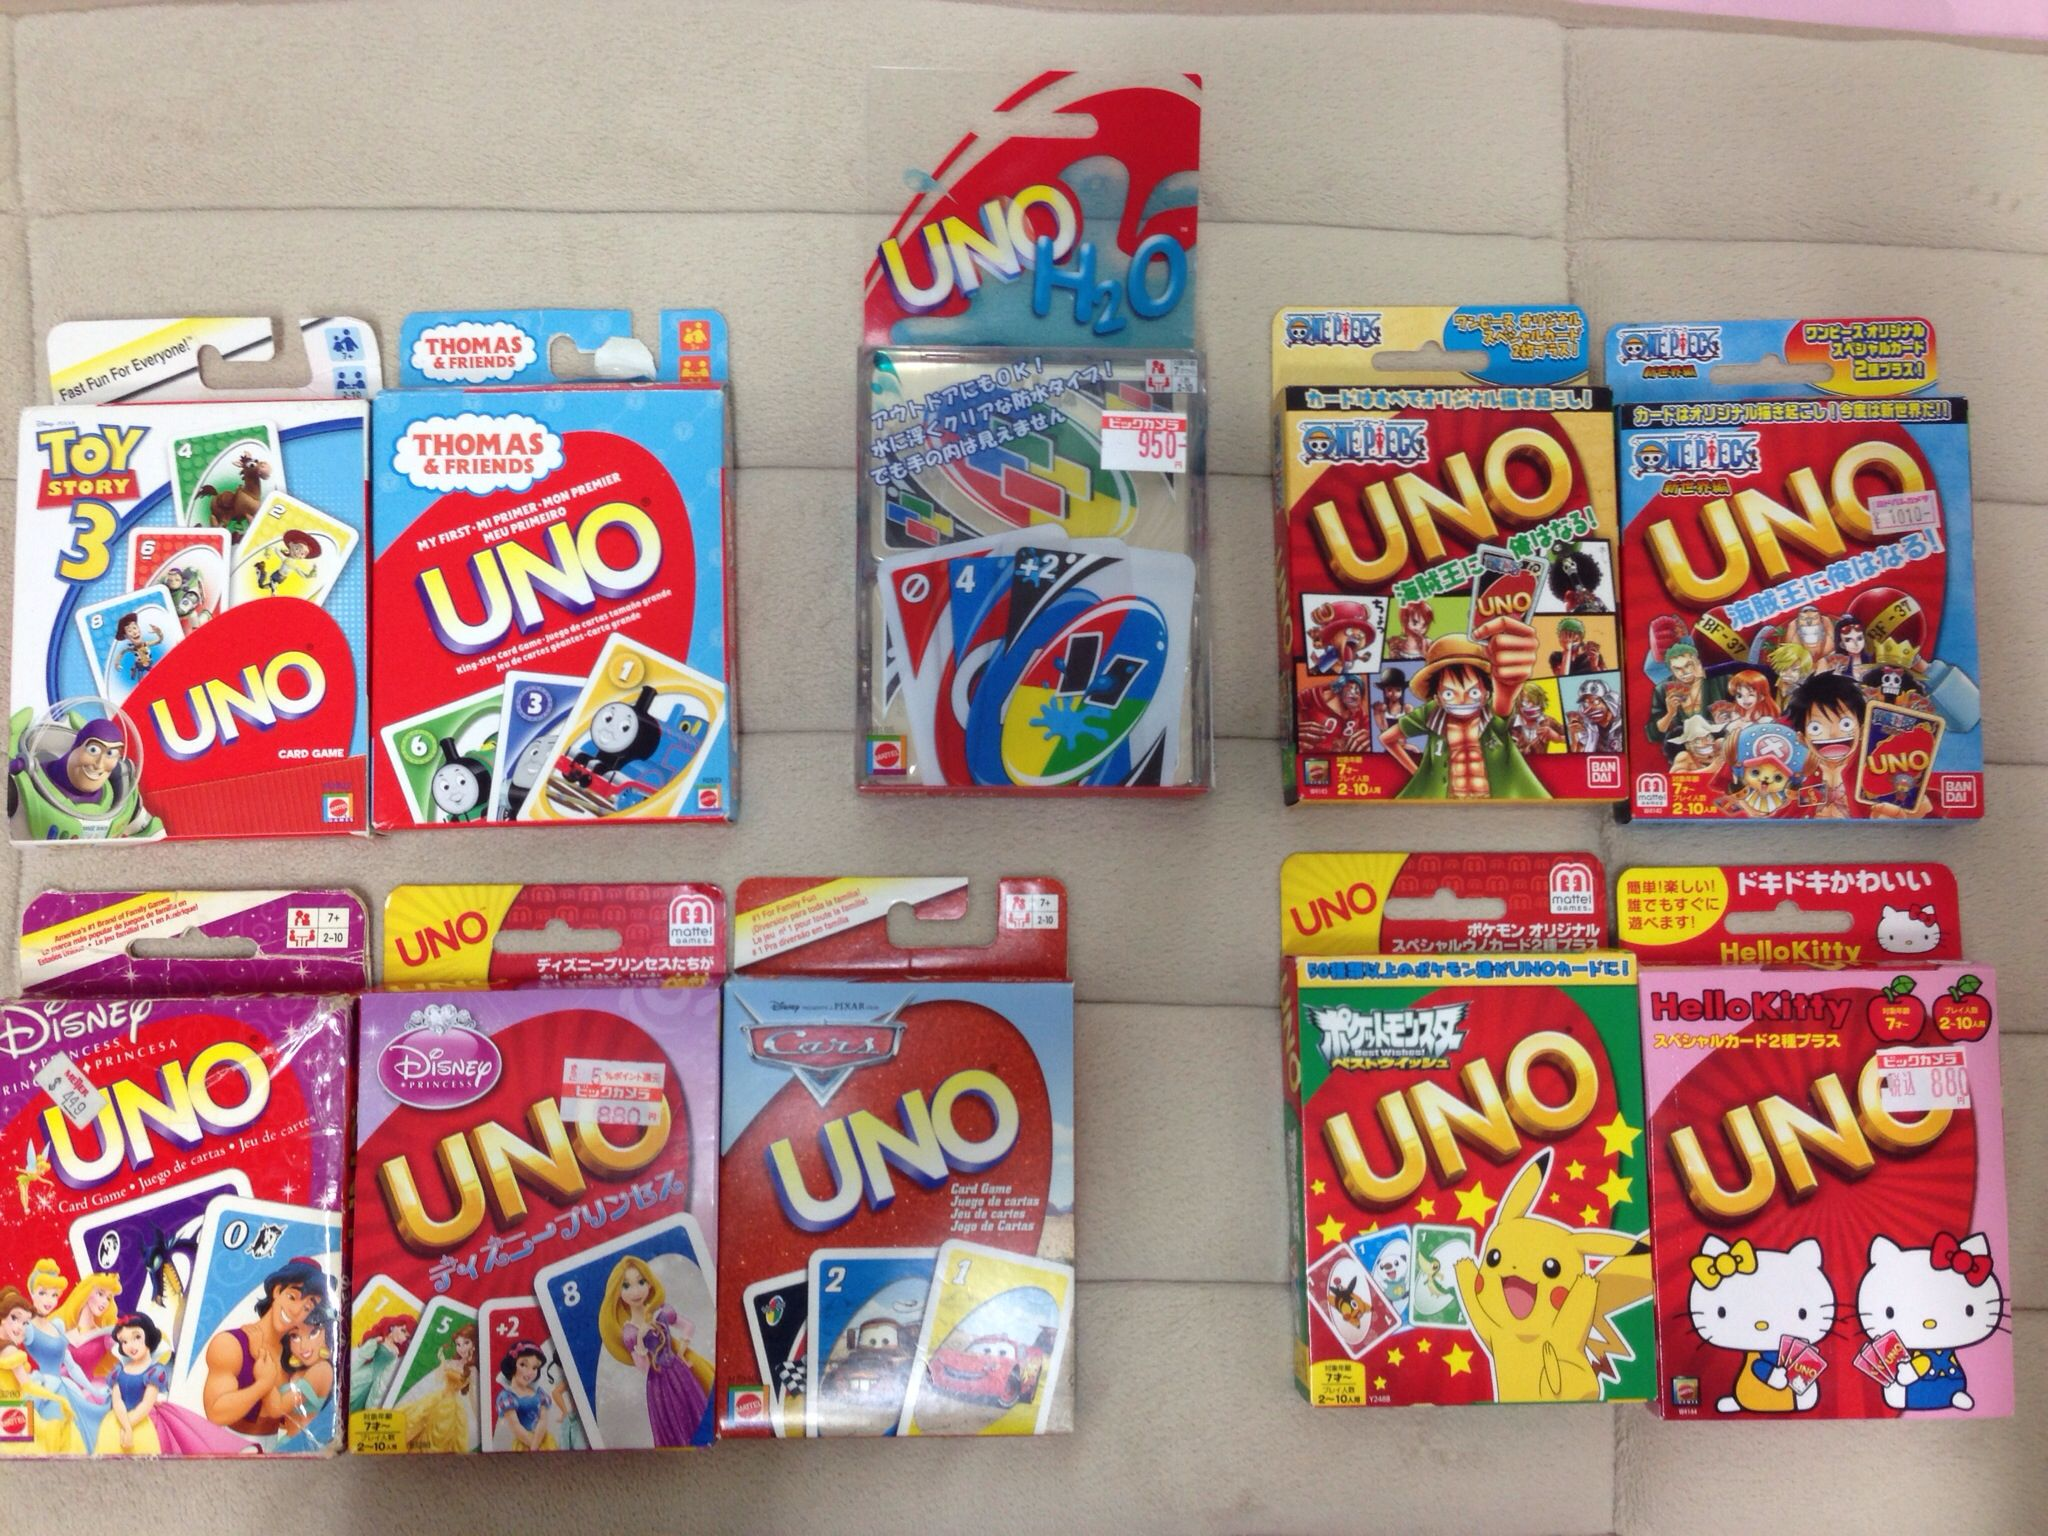 My Uno collection Uno card game, Card games, Cards